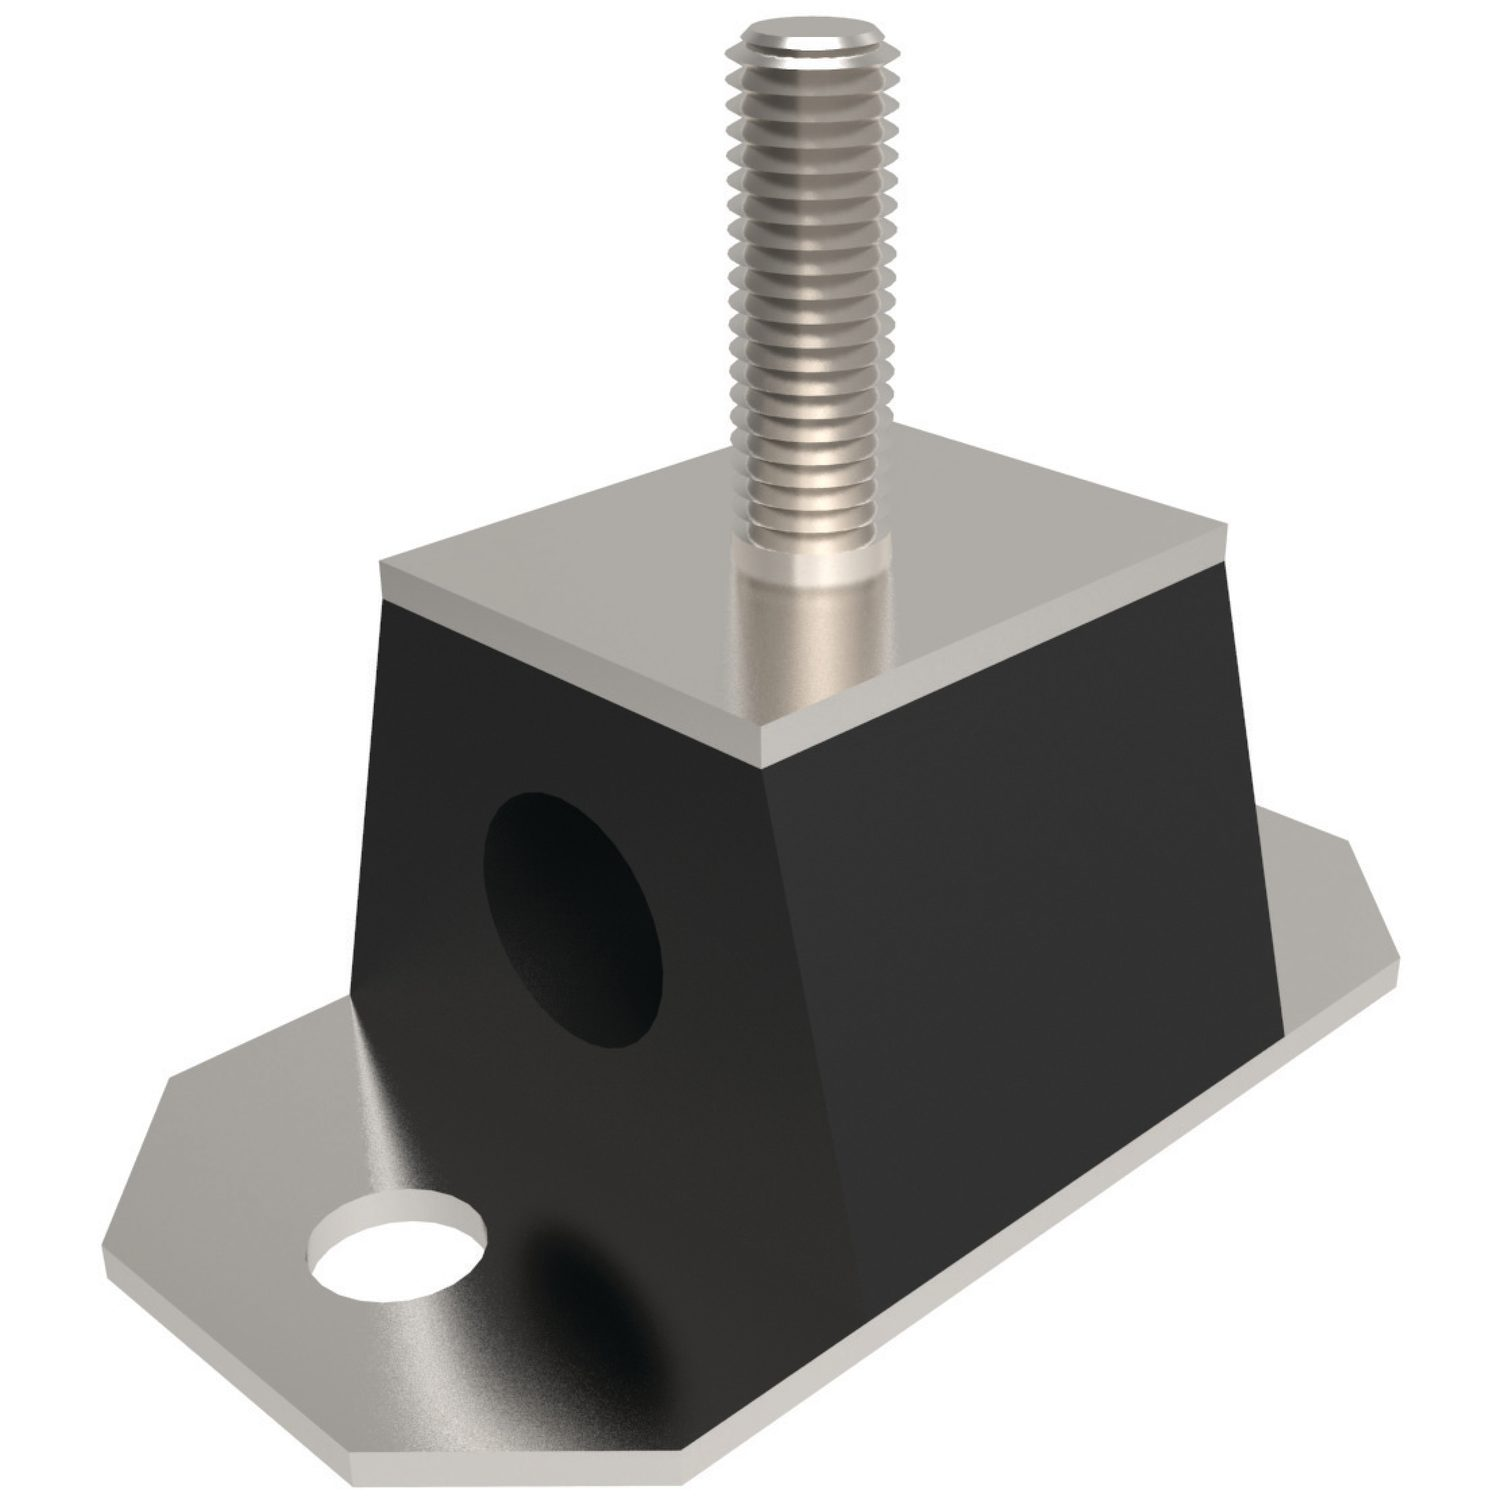 P2044 - Anti-vibration Mounts